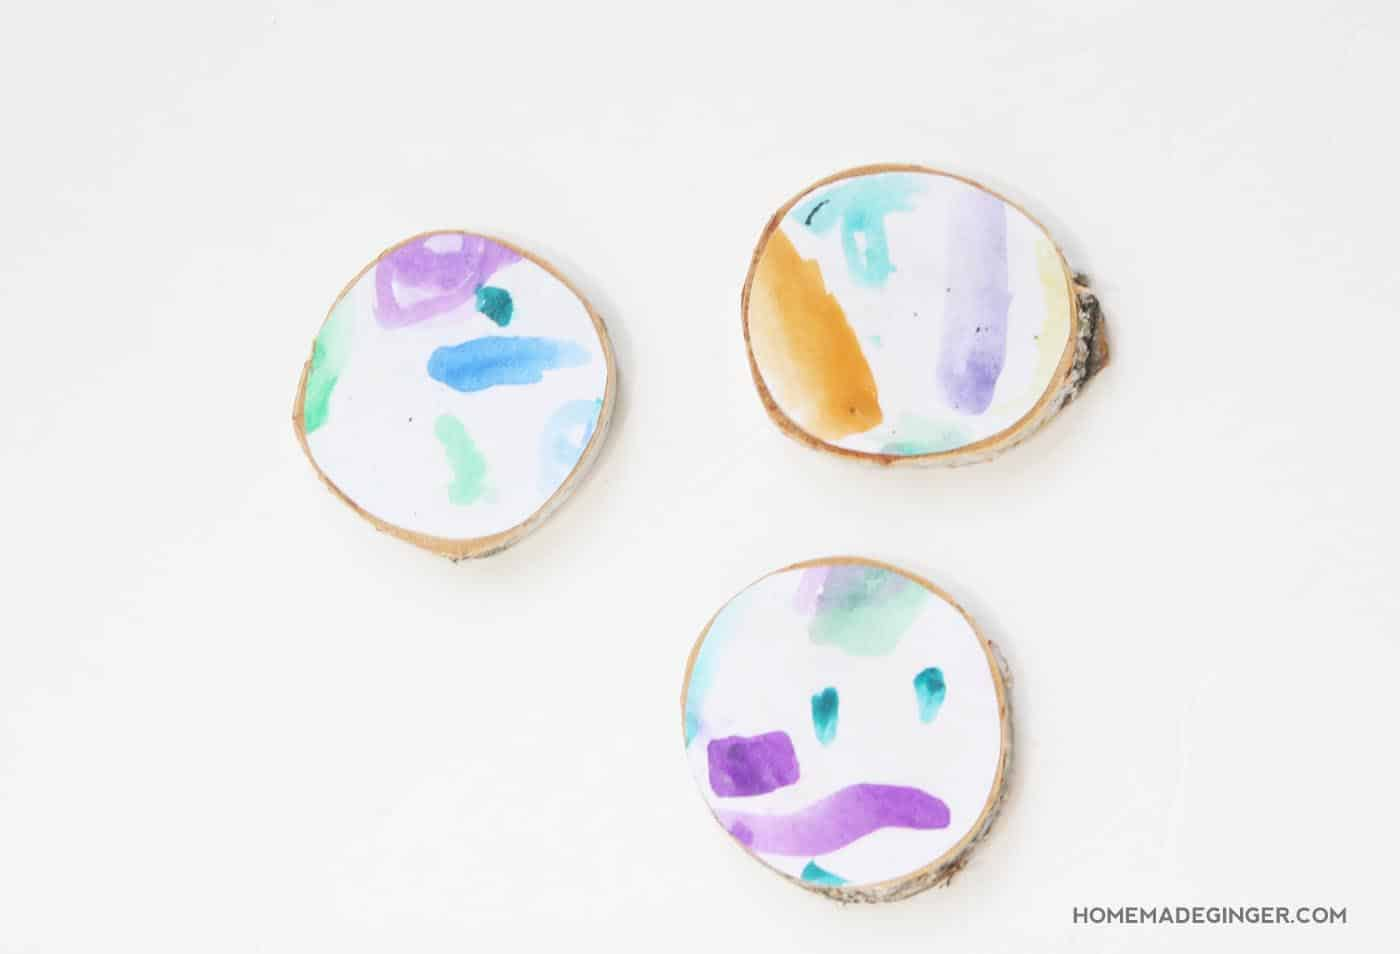 DIY Mother's Day gifts that kids can make: Kid's Art Coaster by Homemade Ginger at Mod Podge Rocks